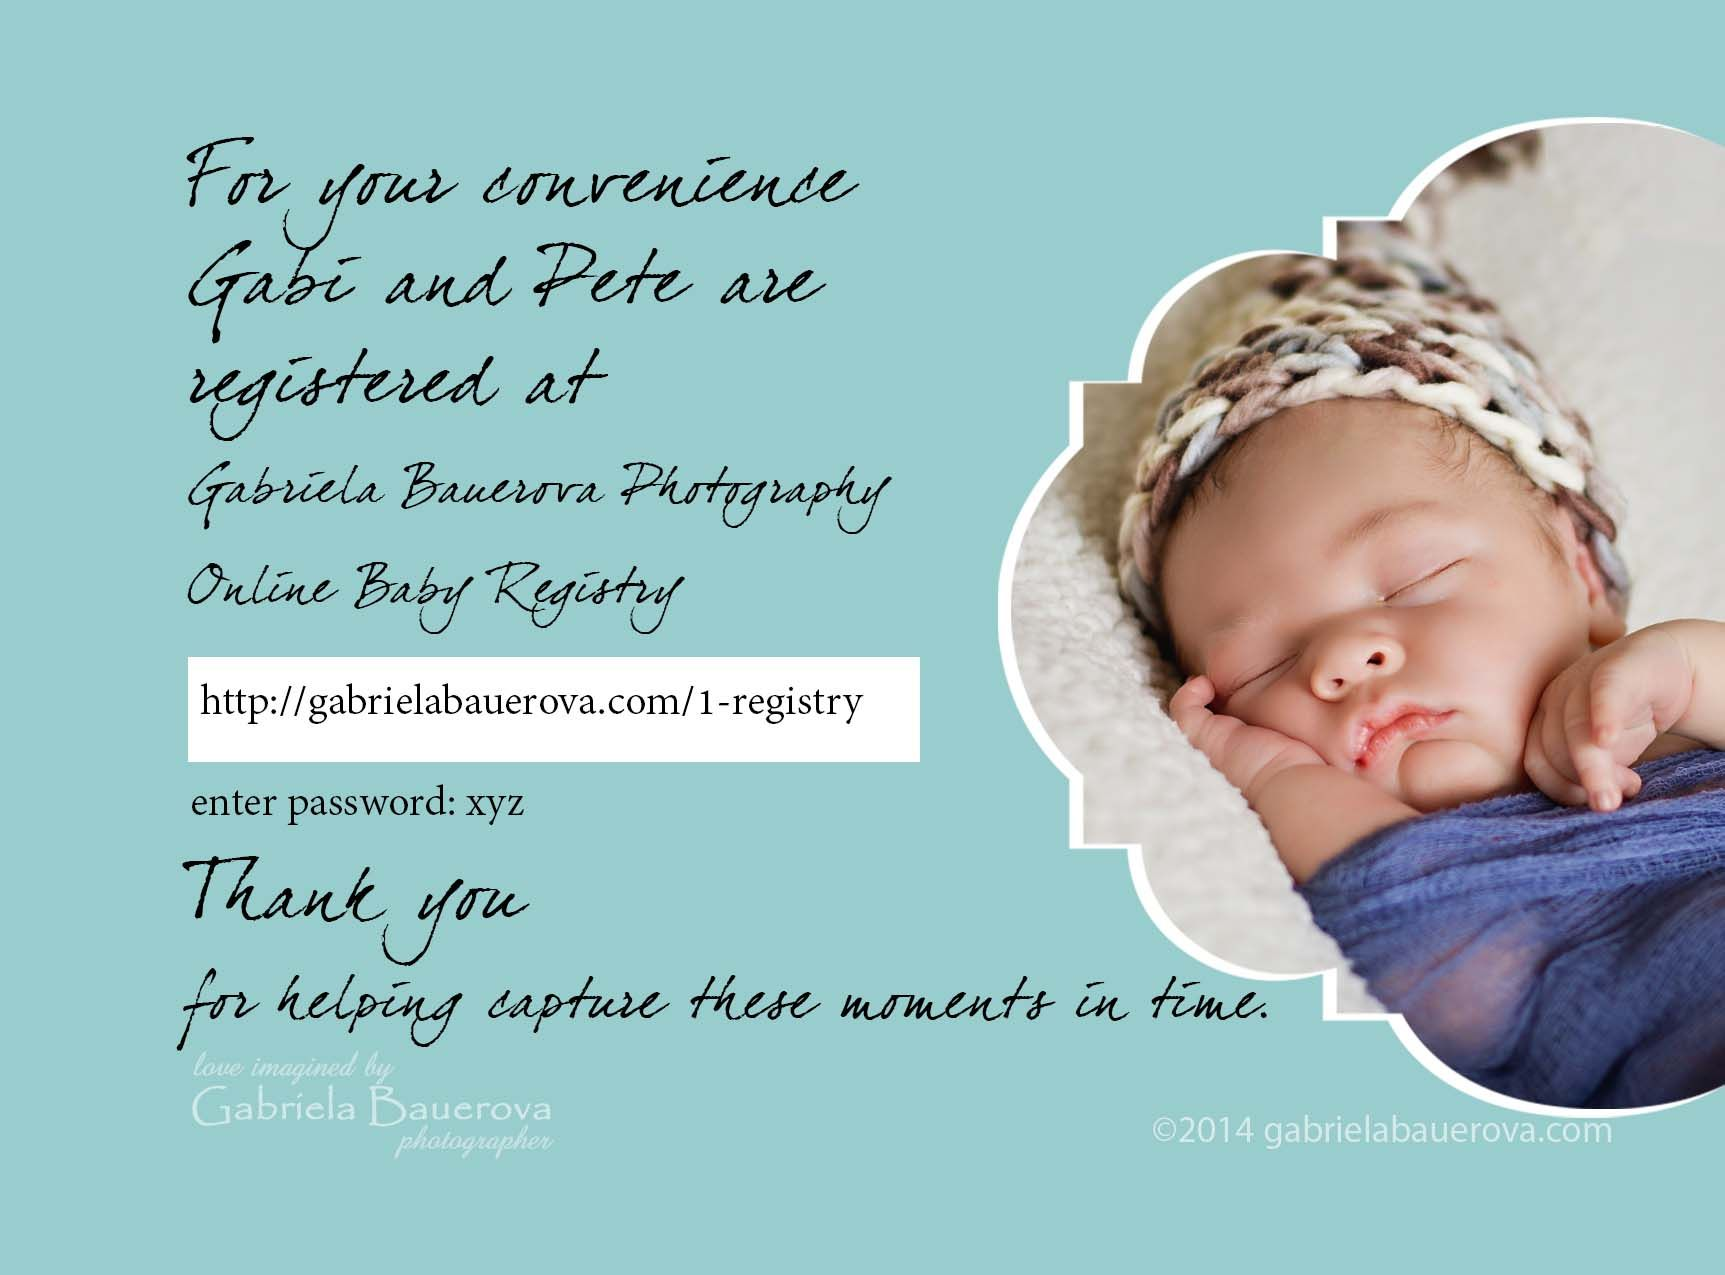 Baby shower congratulations sayings baby shower images pinterest gorgeous baby shower event message in baby shower ideas from top trendy baby shower event message must check it find ideas about and m4hsunfo Images